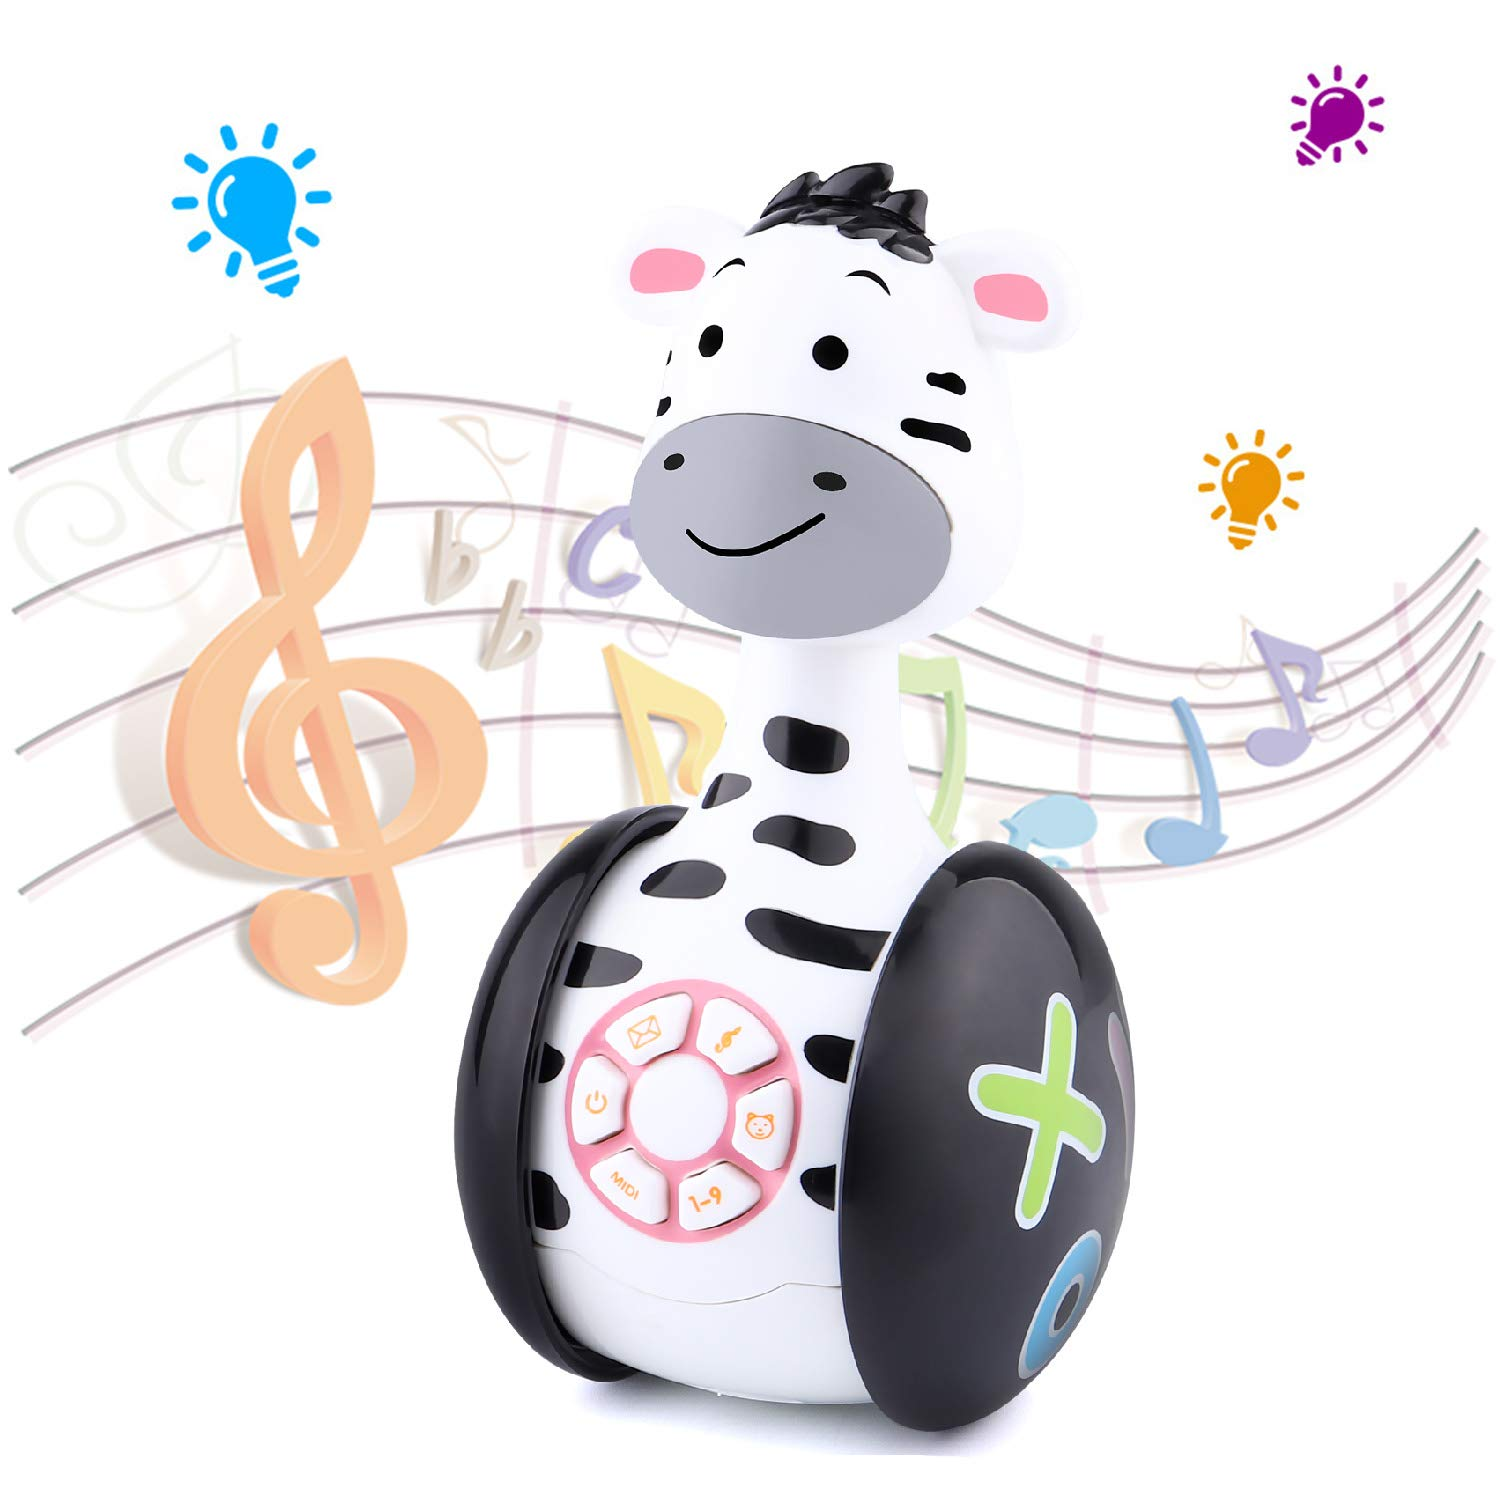 Tinabless Baby Musical Toys, Zebra Baby Tumbler Toy with Music and LED Light Up for Infants, Toddler Interactive Learning Development, Best Gifts